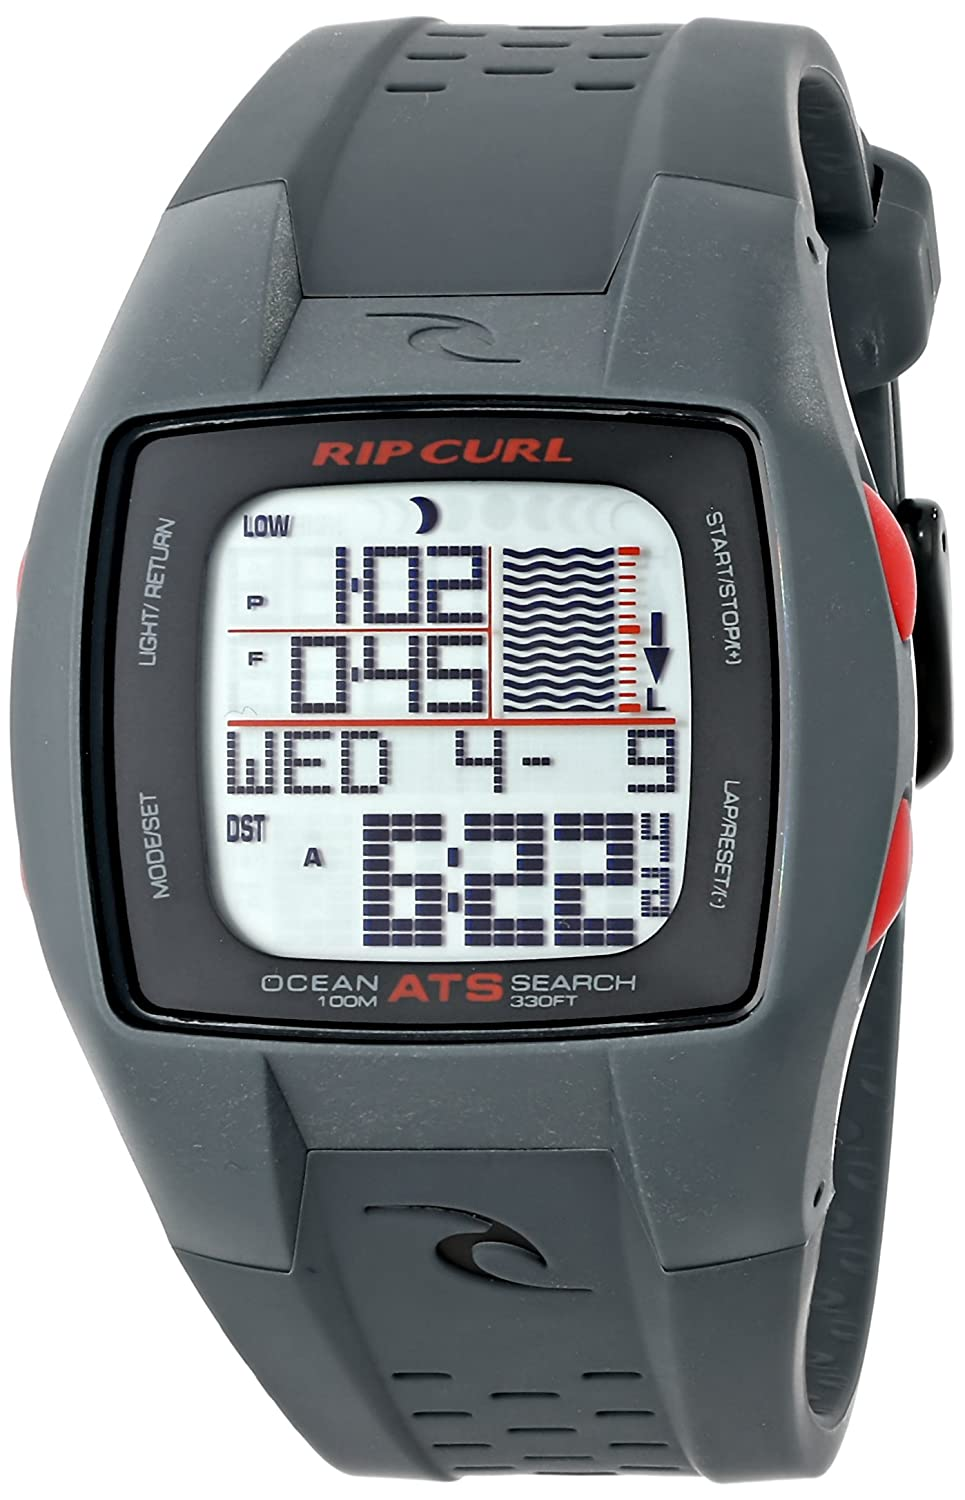 Rip Curl Men's A1015 Trestles Oceansearch Surf Watch with Grey Band чемодан rip curl rip curl ri027bwzlc59